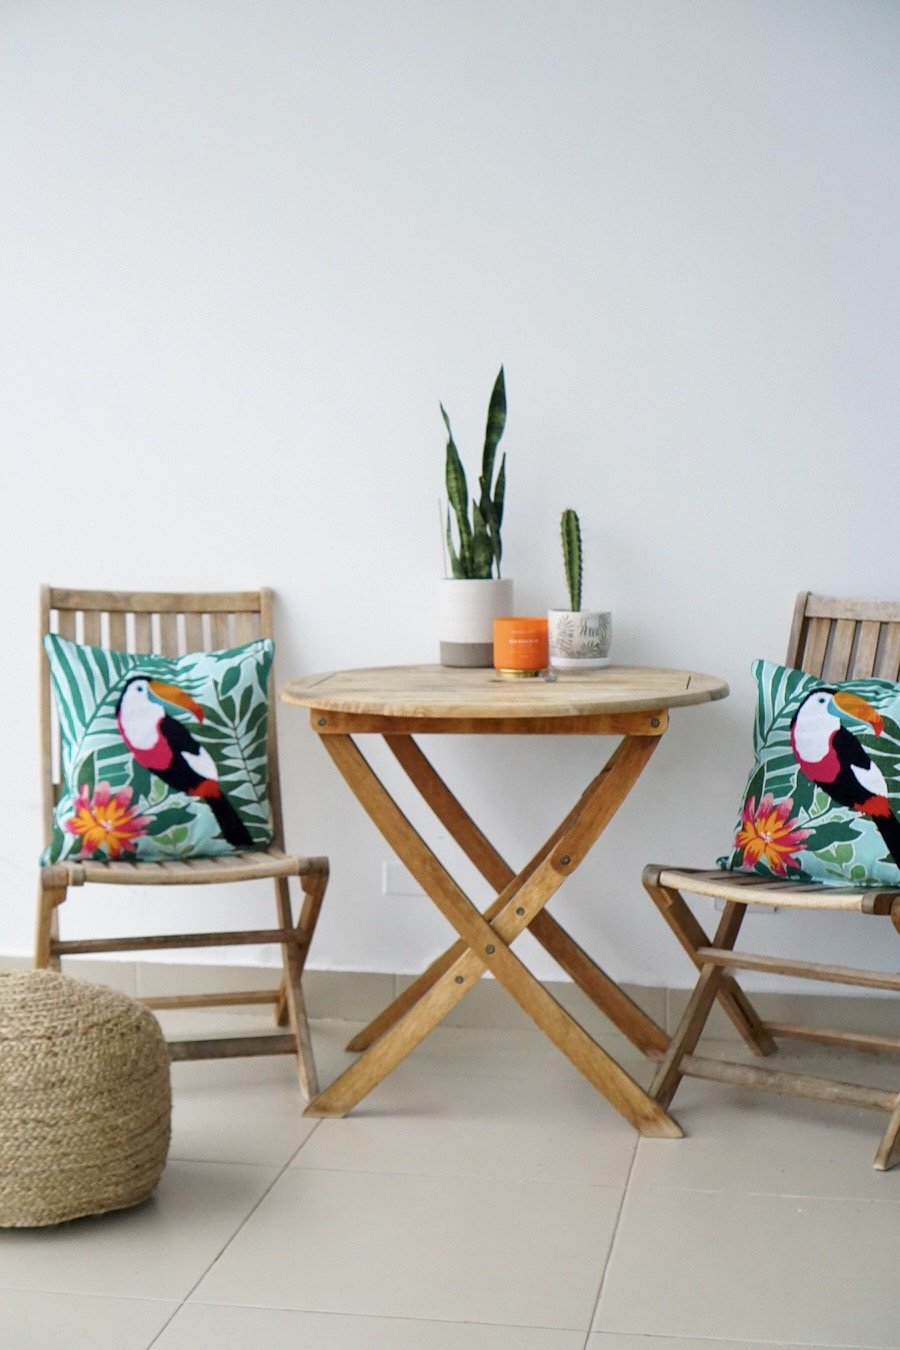 Patio Refresh with Summer Finds from Walmart Home